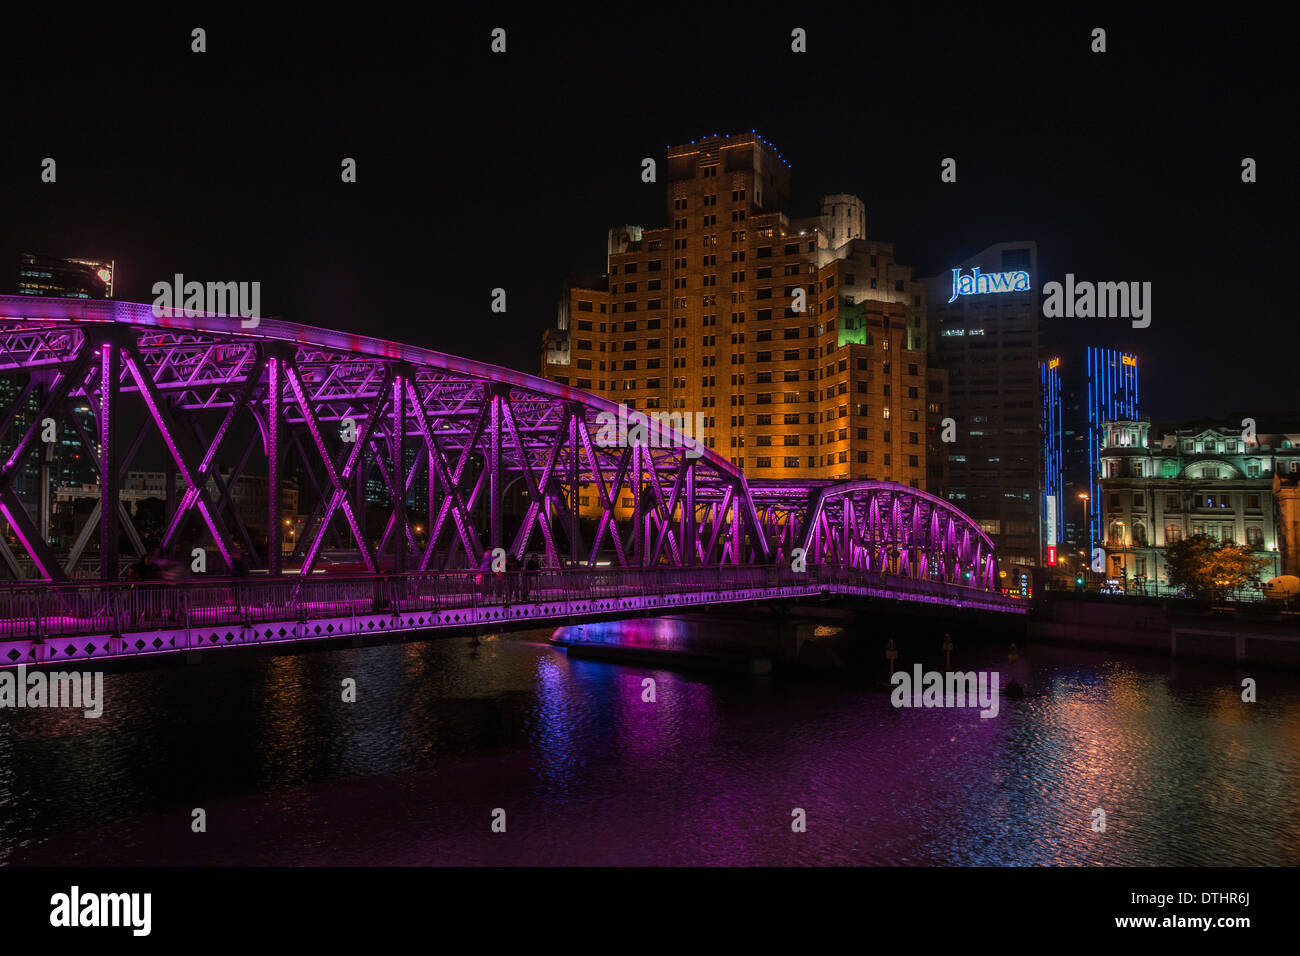 Waibaidu steel truss bridge at night, magenta lights, Shanghai, China - Stock Image